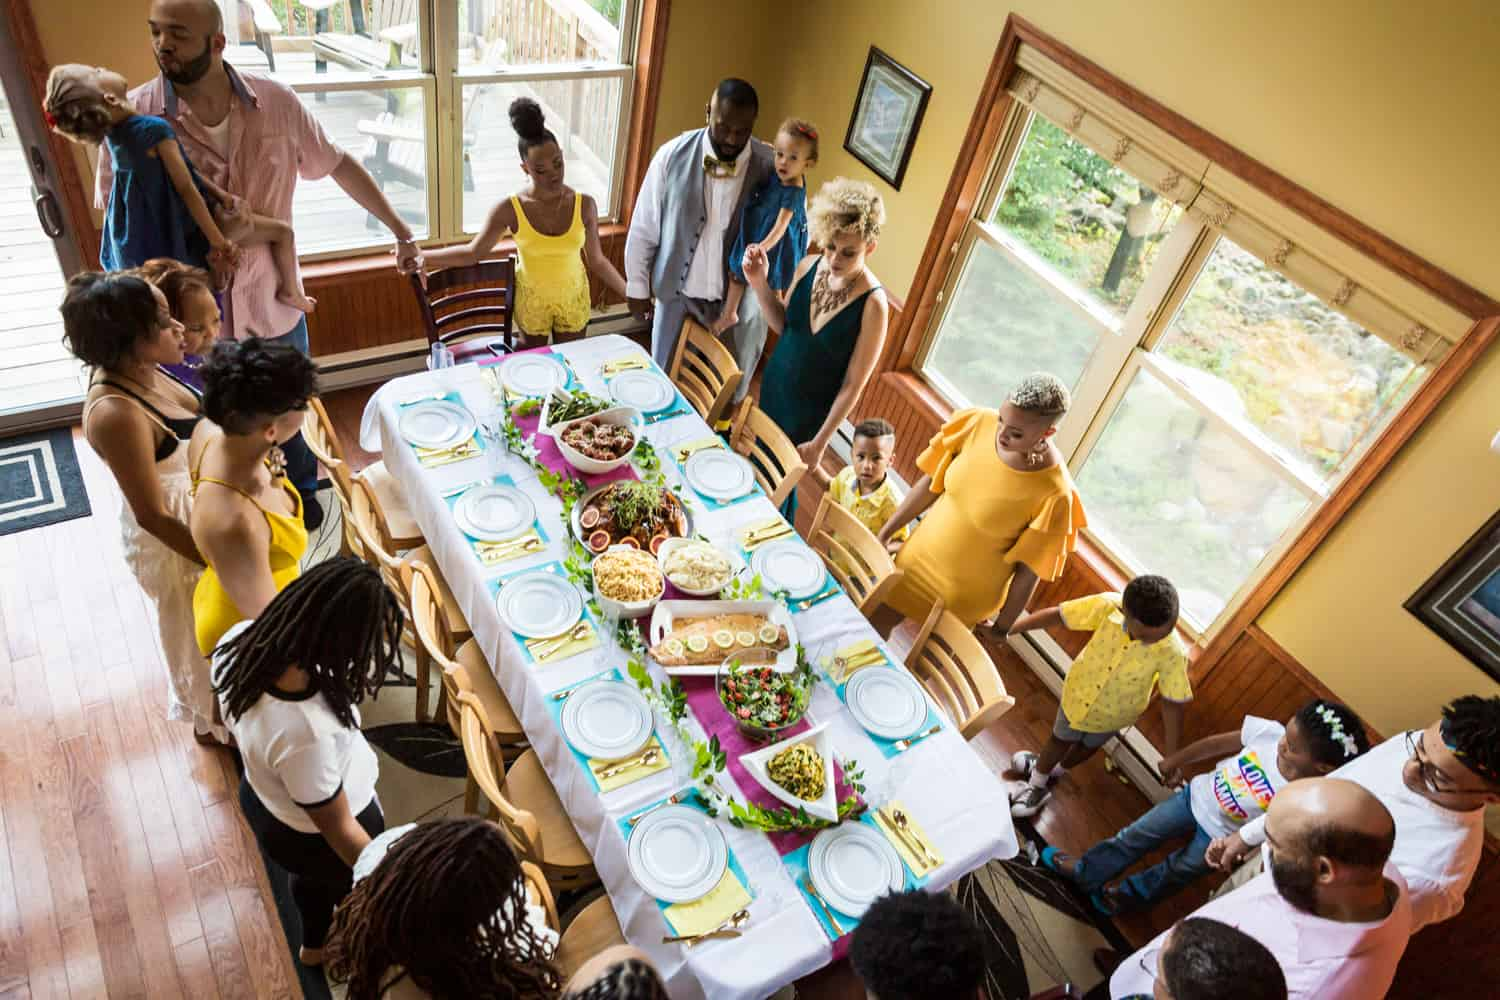 Family holding hands and praying around dinner table during a family reunion portrait